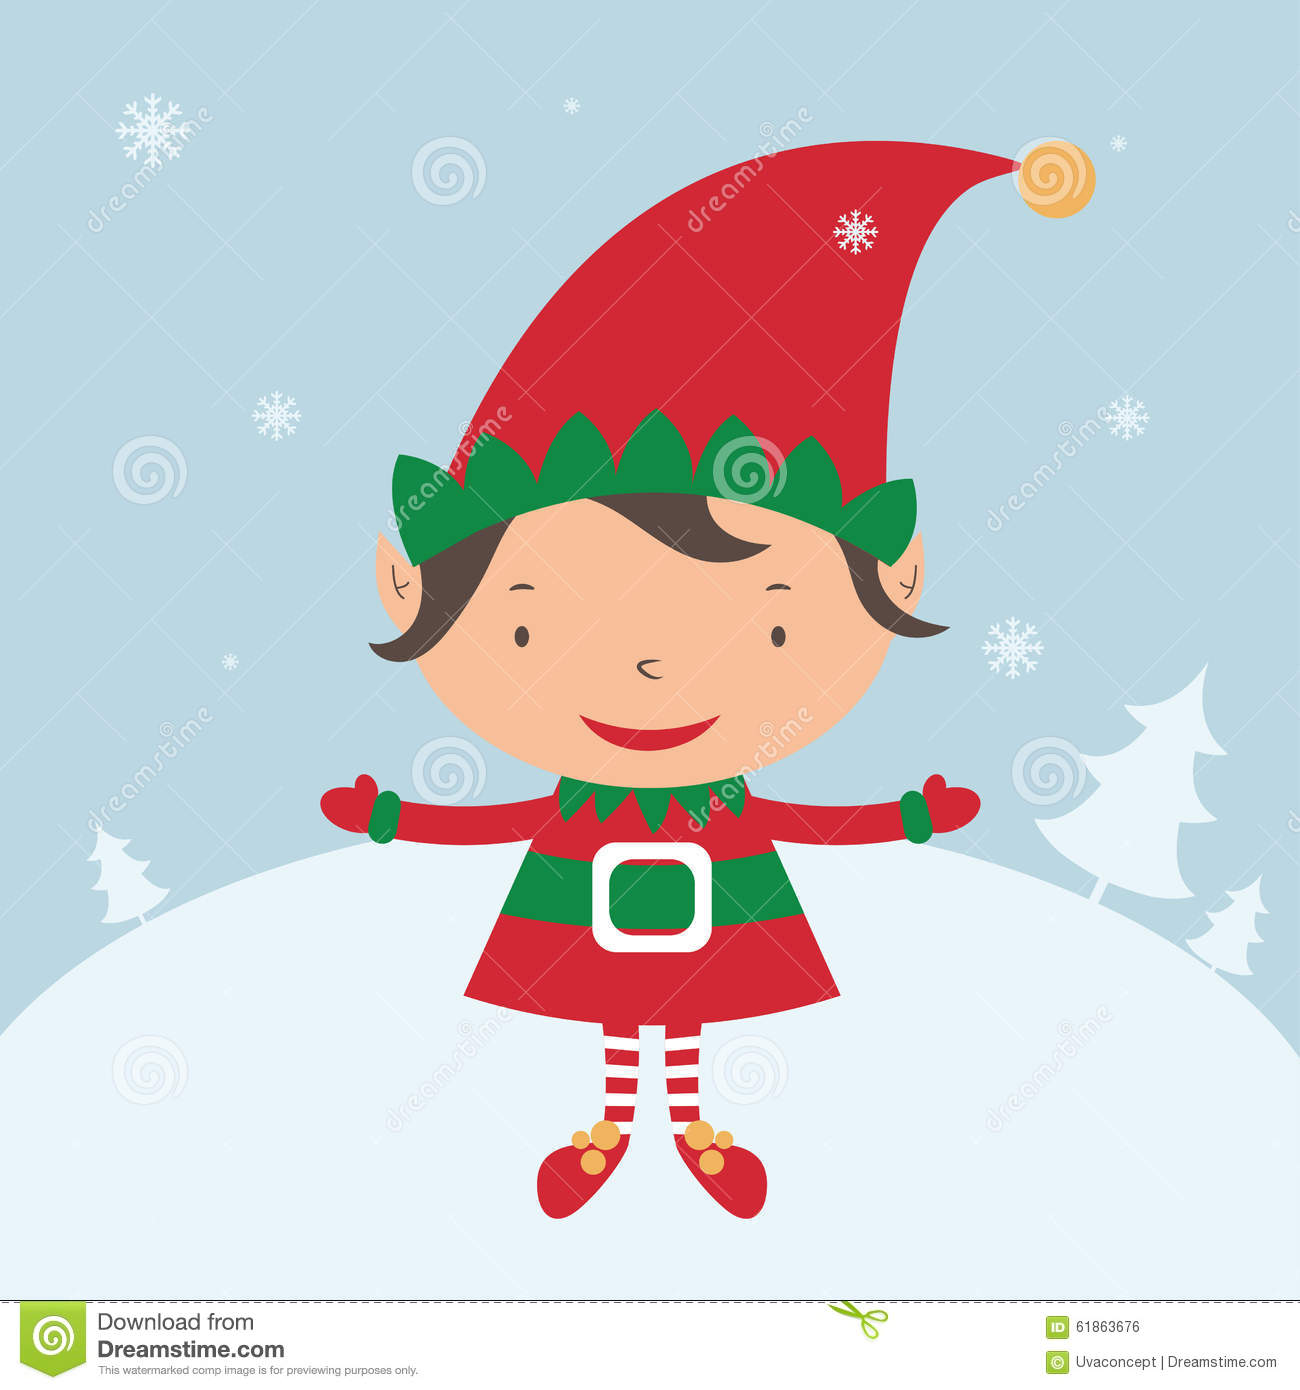 Christmas Elf Card Template Stock Vector Illustration Of Happy